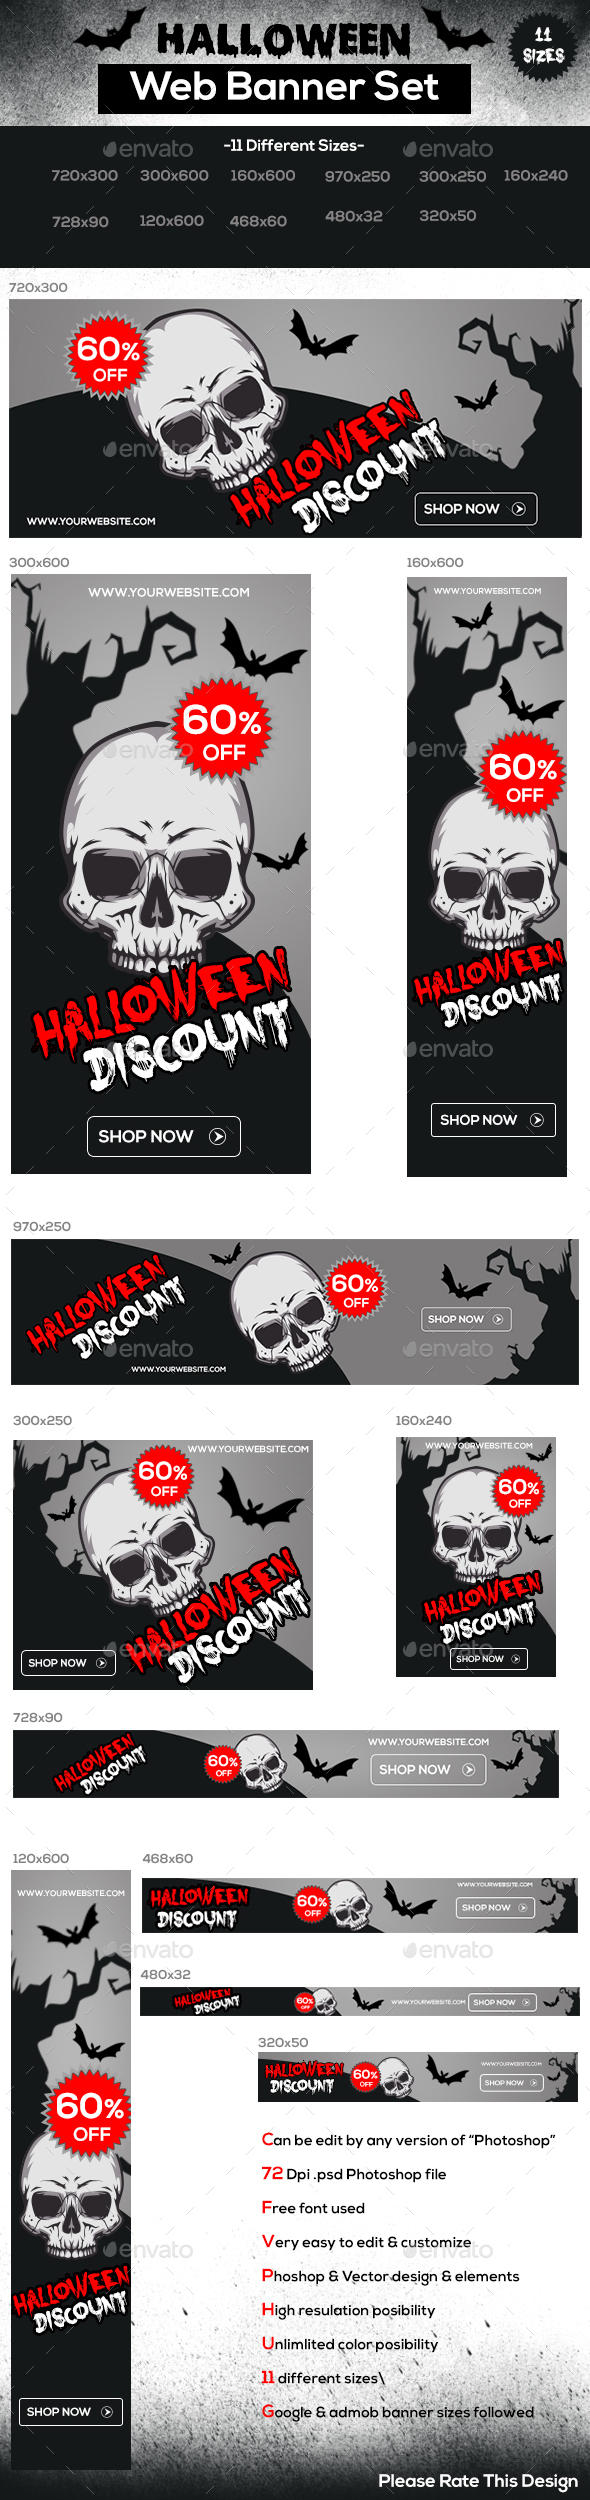 Halloween Web Banner Set - Banners & Ads Web Elements